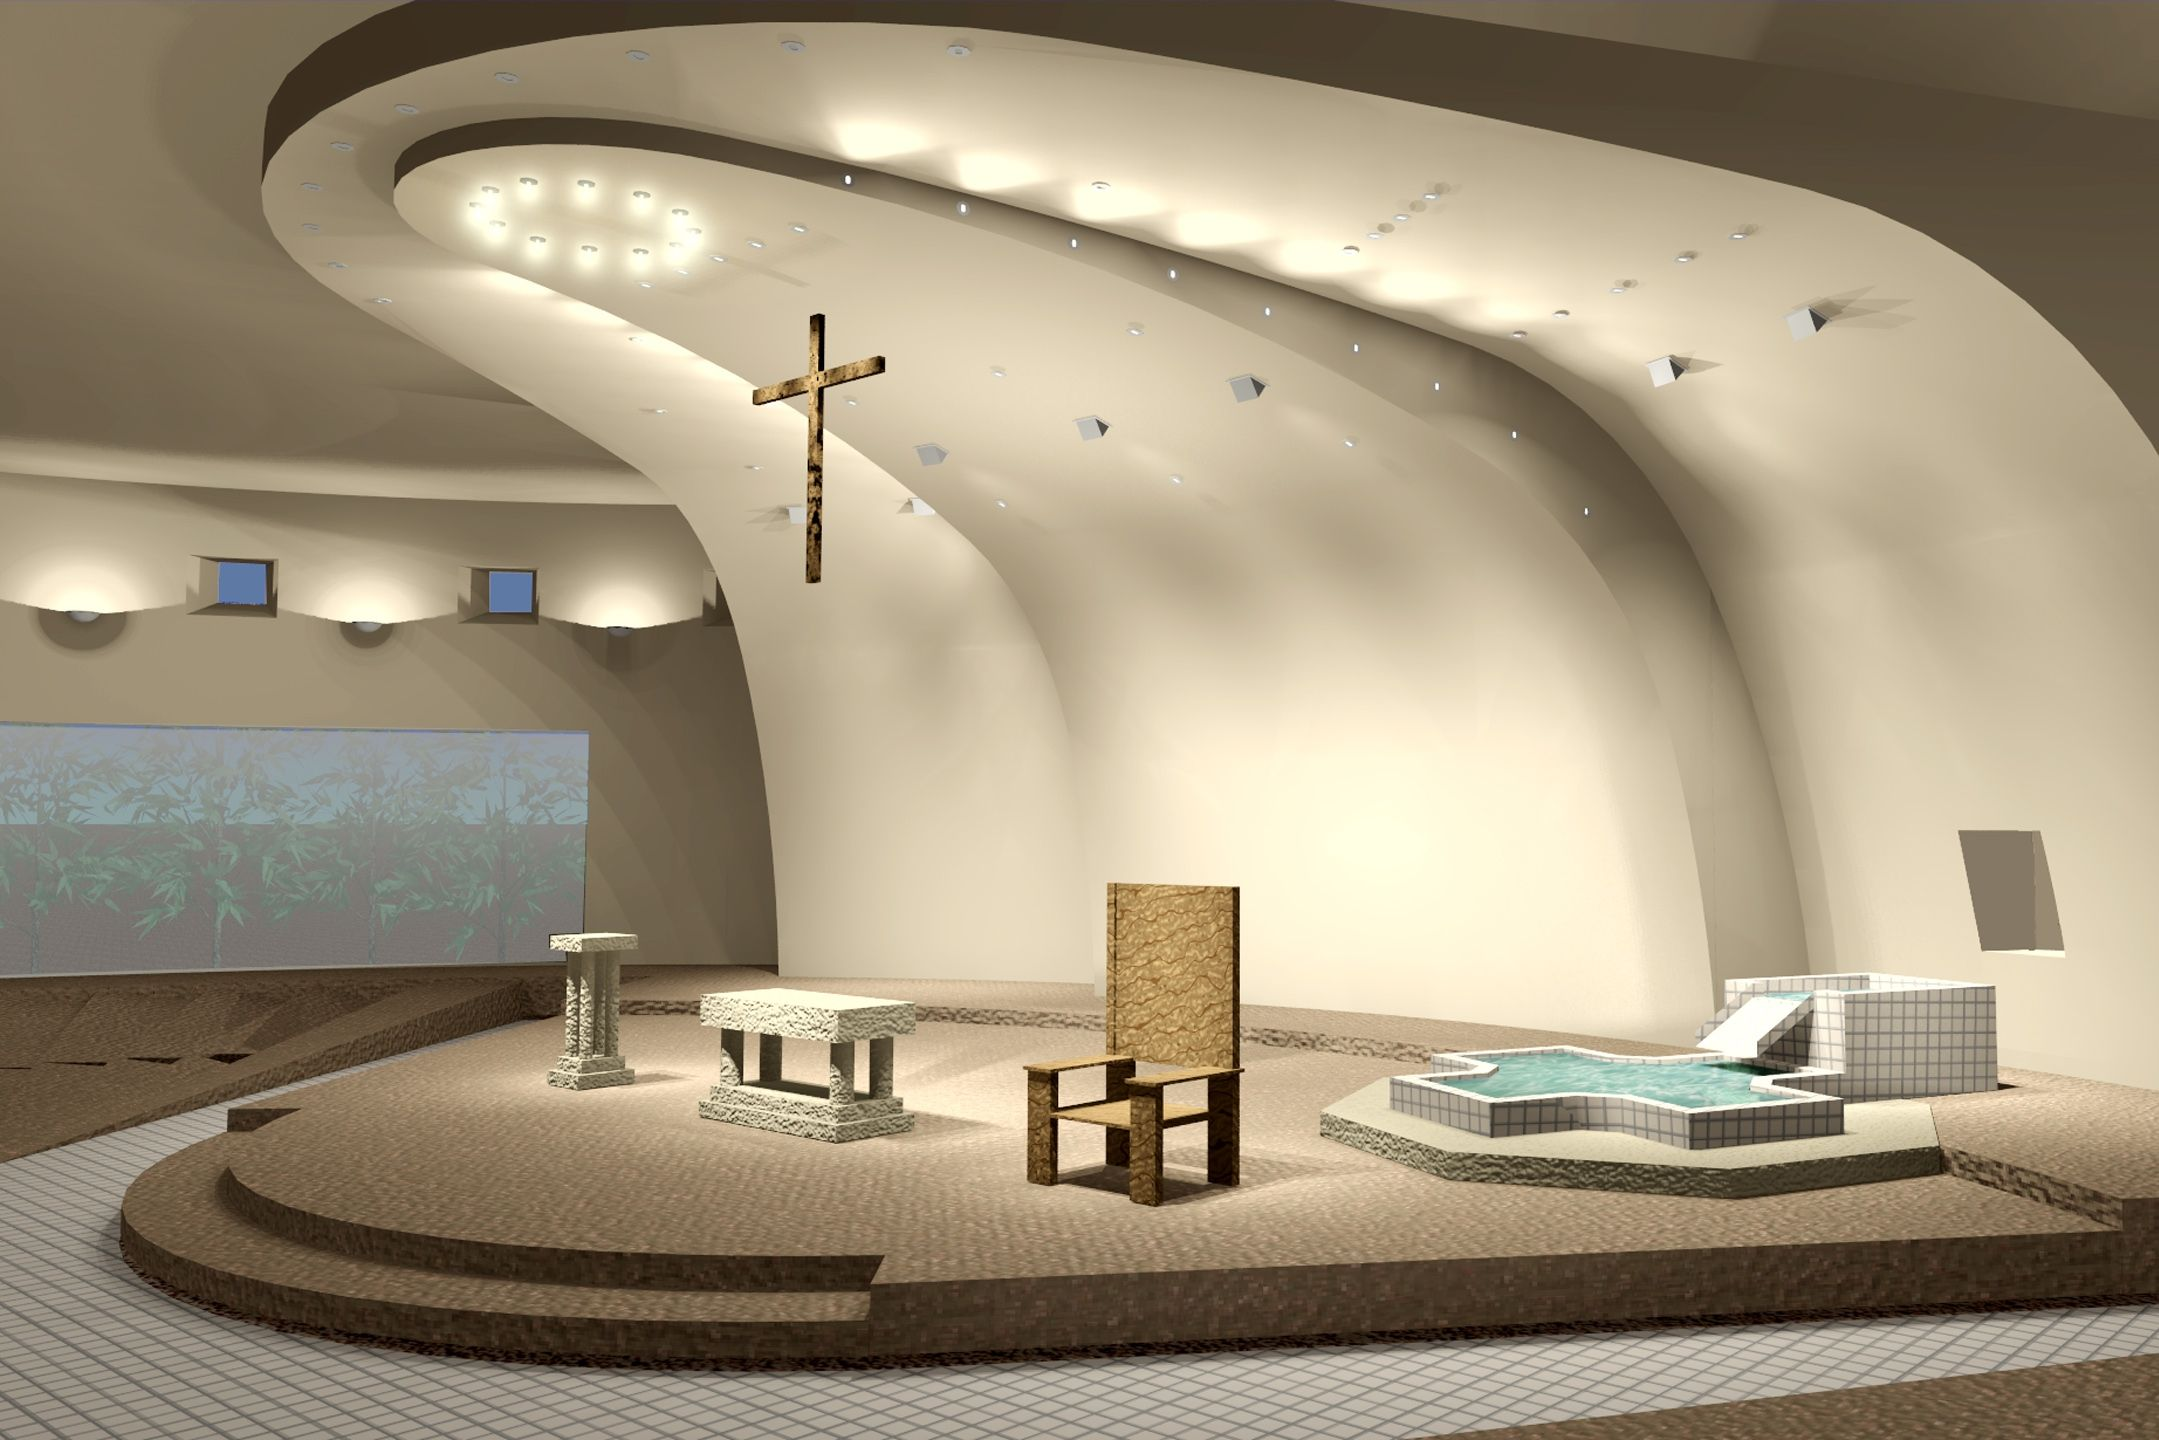 Church Interior Design Ideas nice church interior design ideas church interior design ideas goviewxyz Cute Modern Church Interior Design Along With Hardwoord Amp Tile